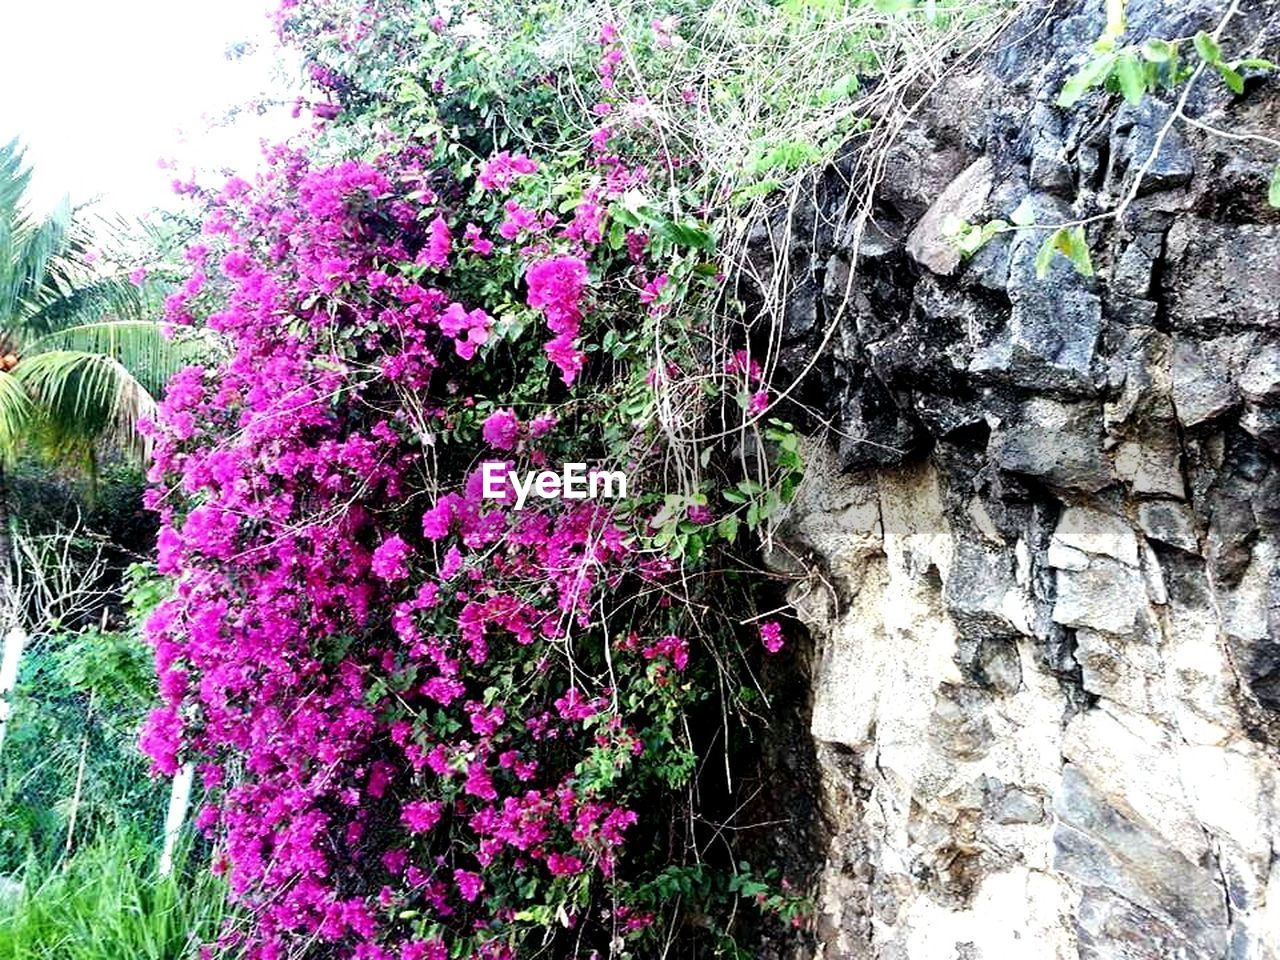 growth, flower, plant, nature, outdoors, day, no people, fragility, beauty in nature, tree, freshness, close-up